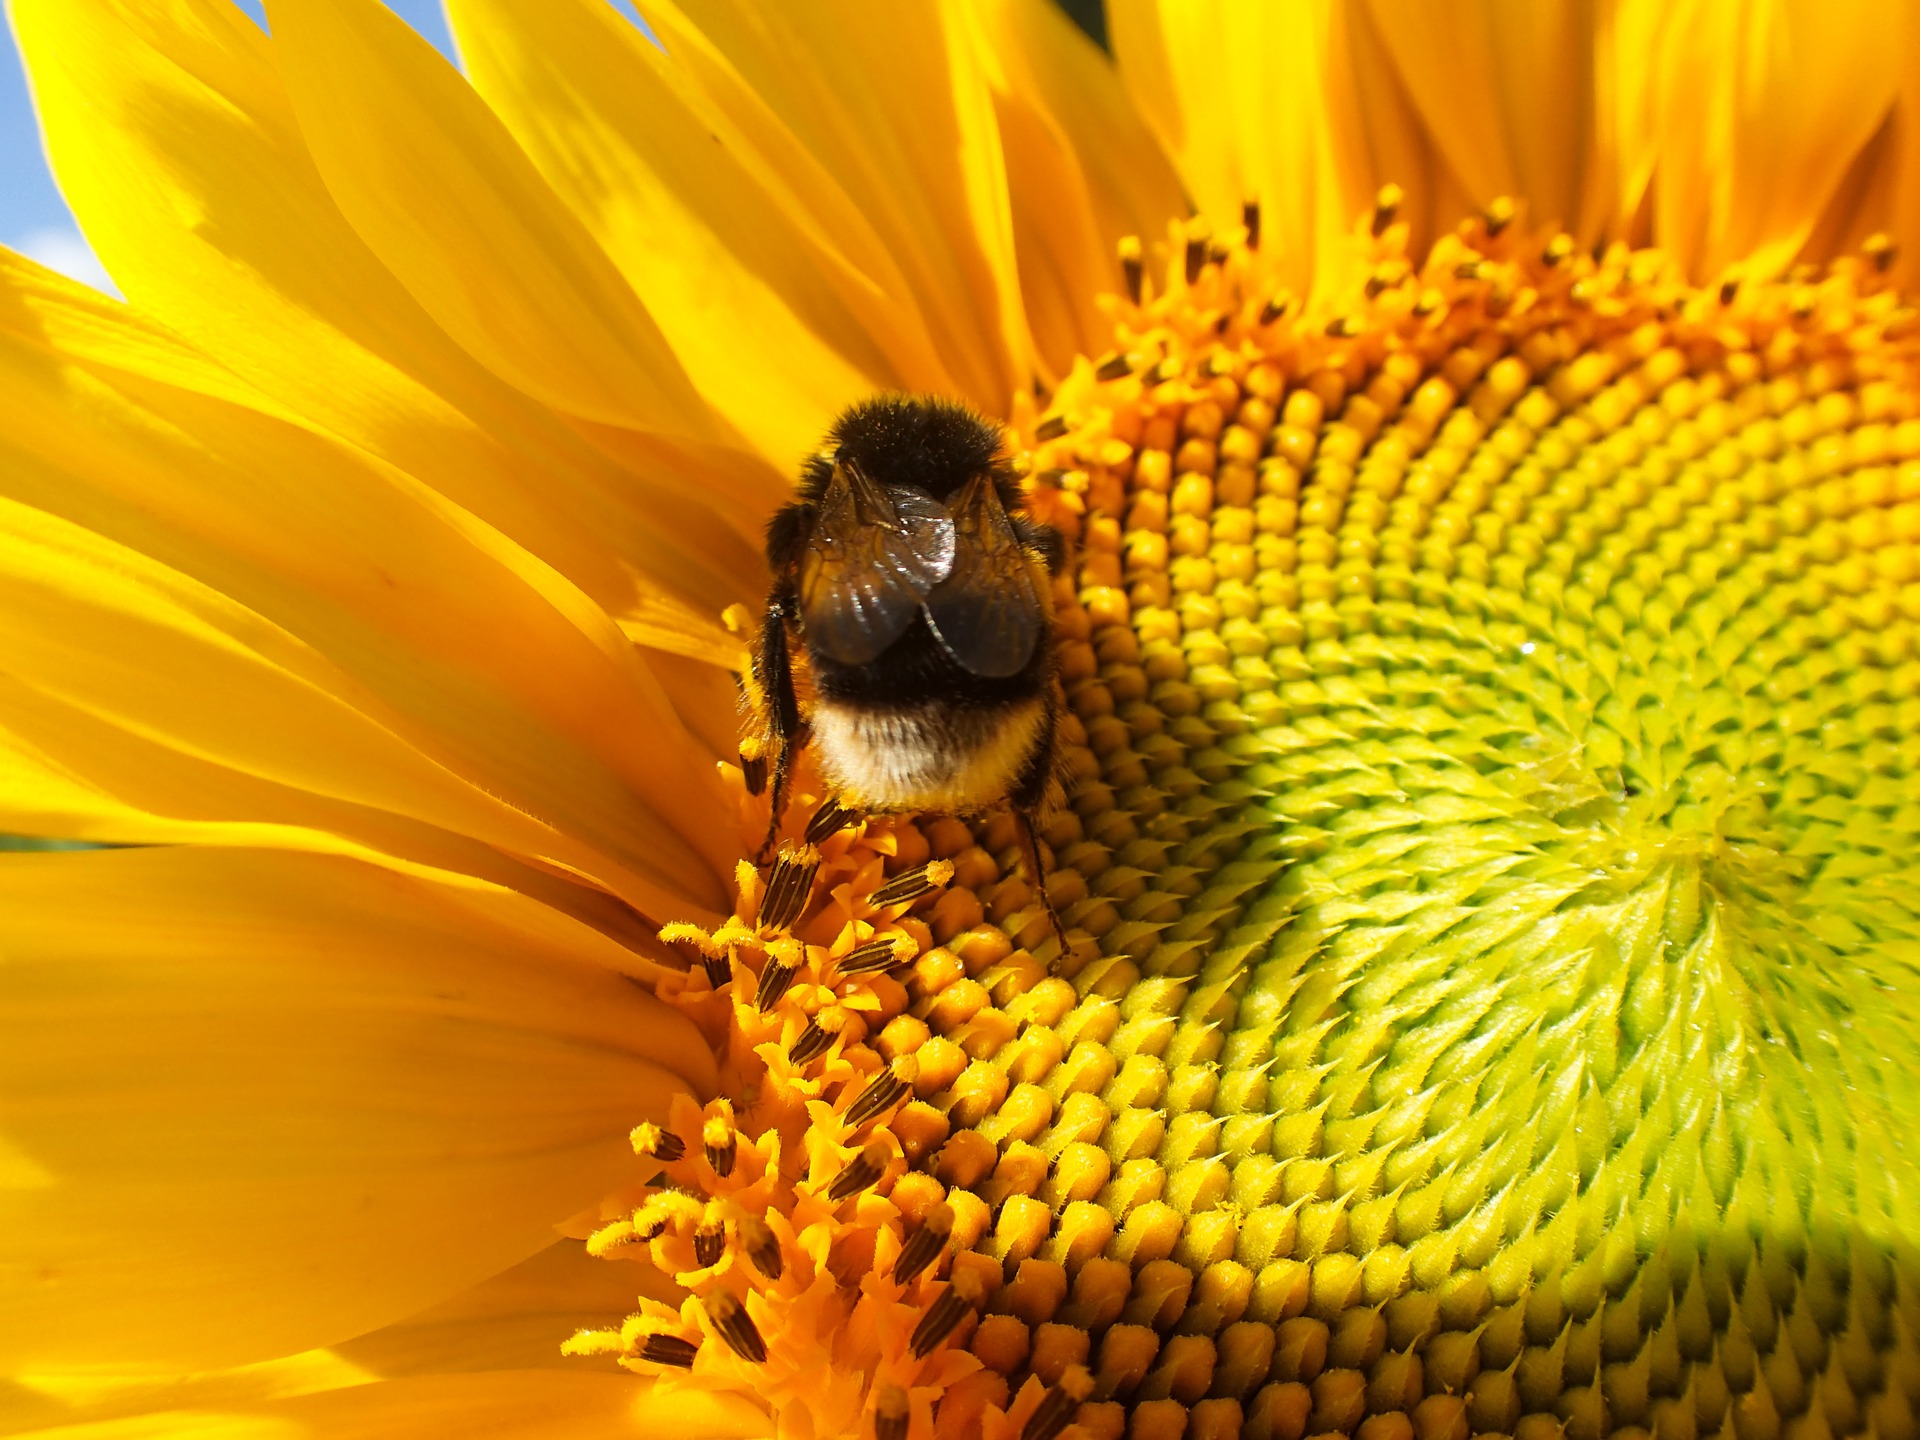 We all need to take action to help our declining bee populations